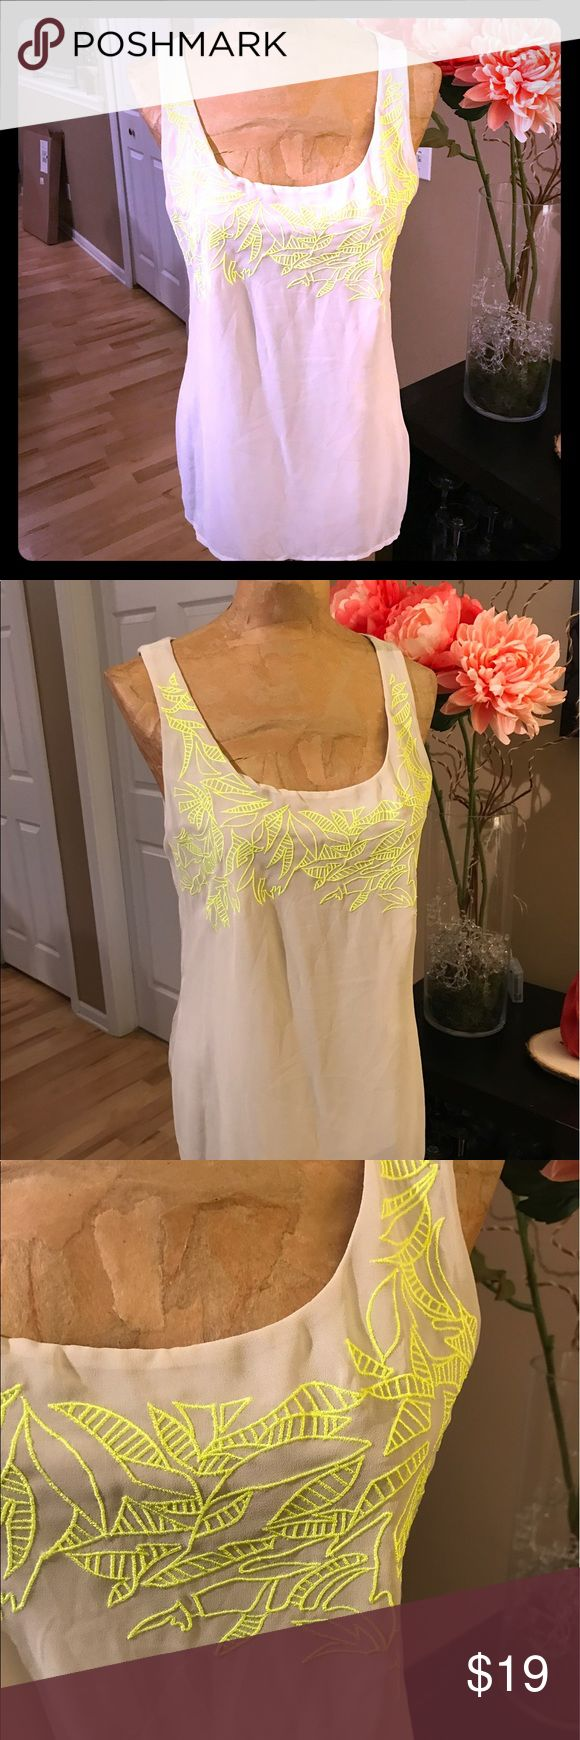 NWT!! Stone and Yellow top Stone/tan top by Express. Neon yellow embroidery on front. Cut out open back. NWT, never worn. Express Tops Tank Tops